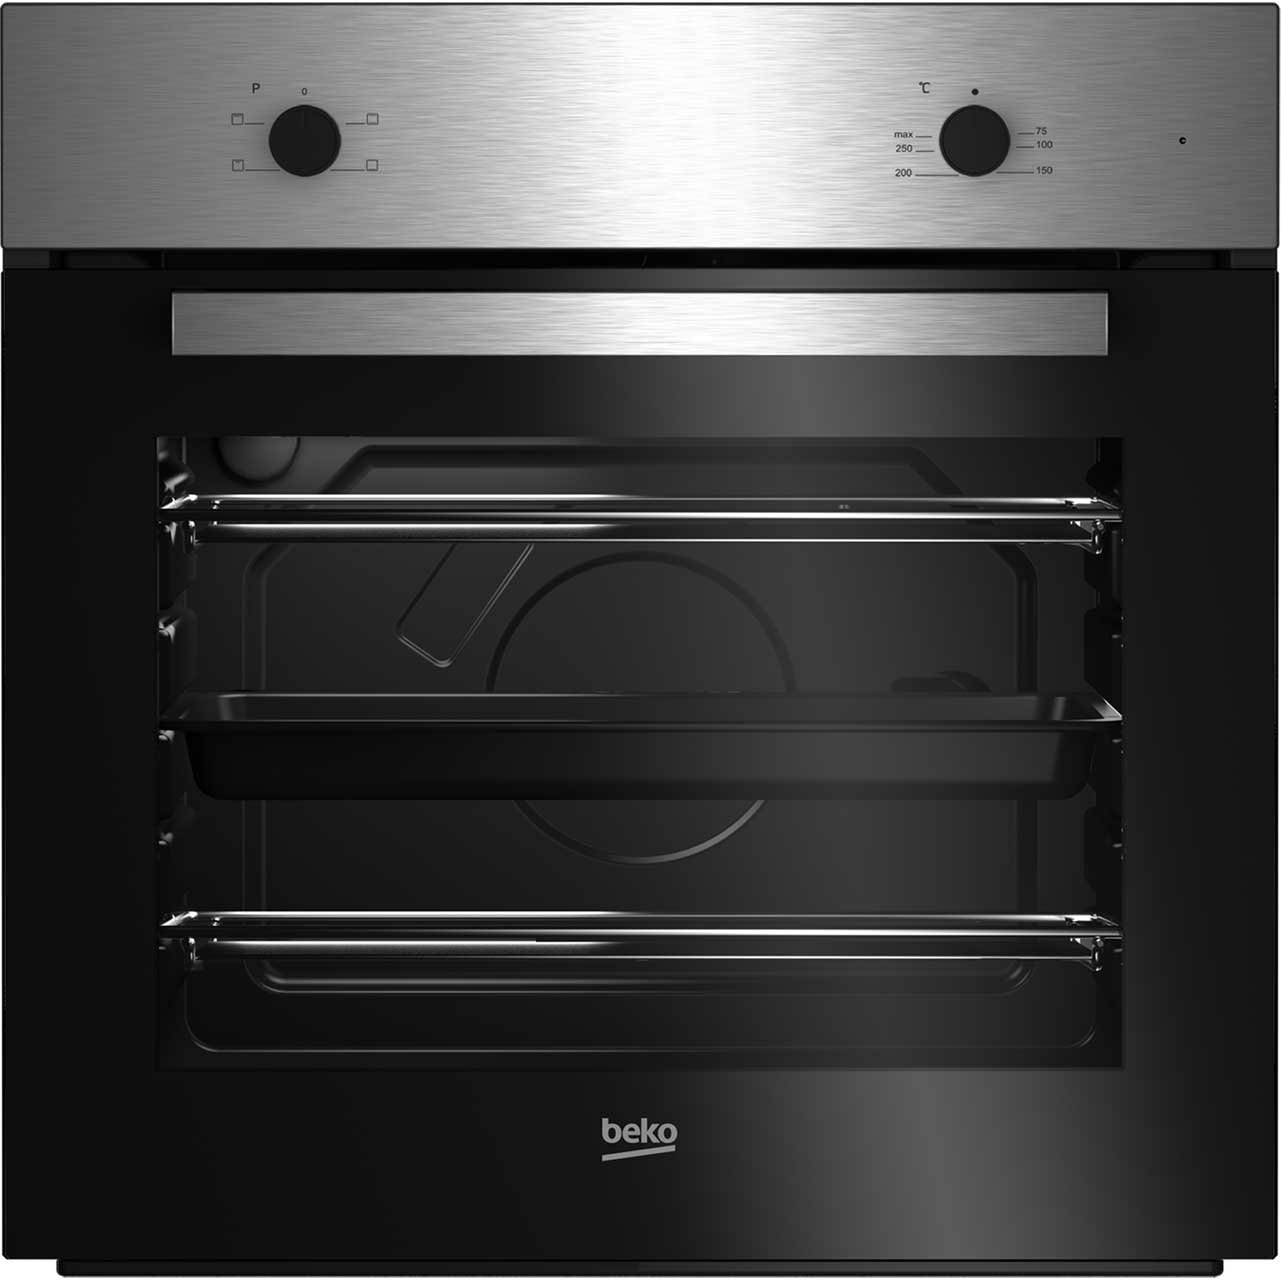 Beko Single Oven - Integrated - BRIC21000X - Stainless Steel